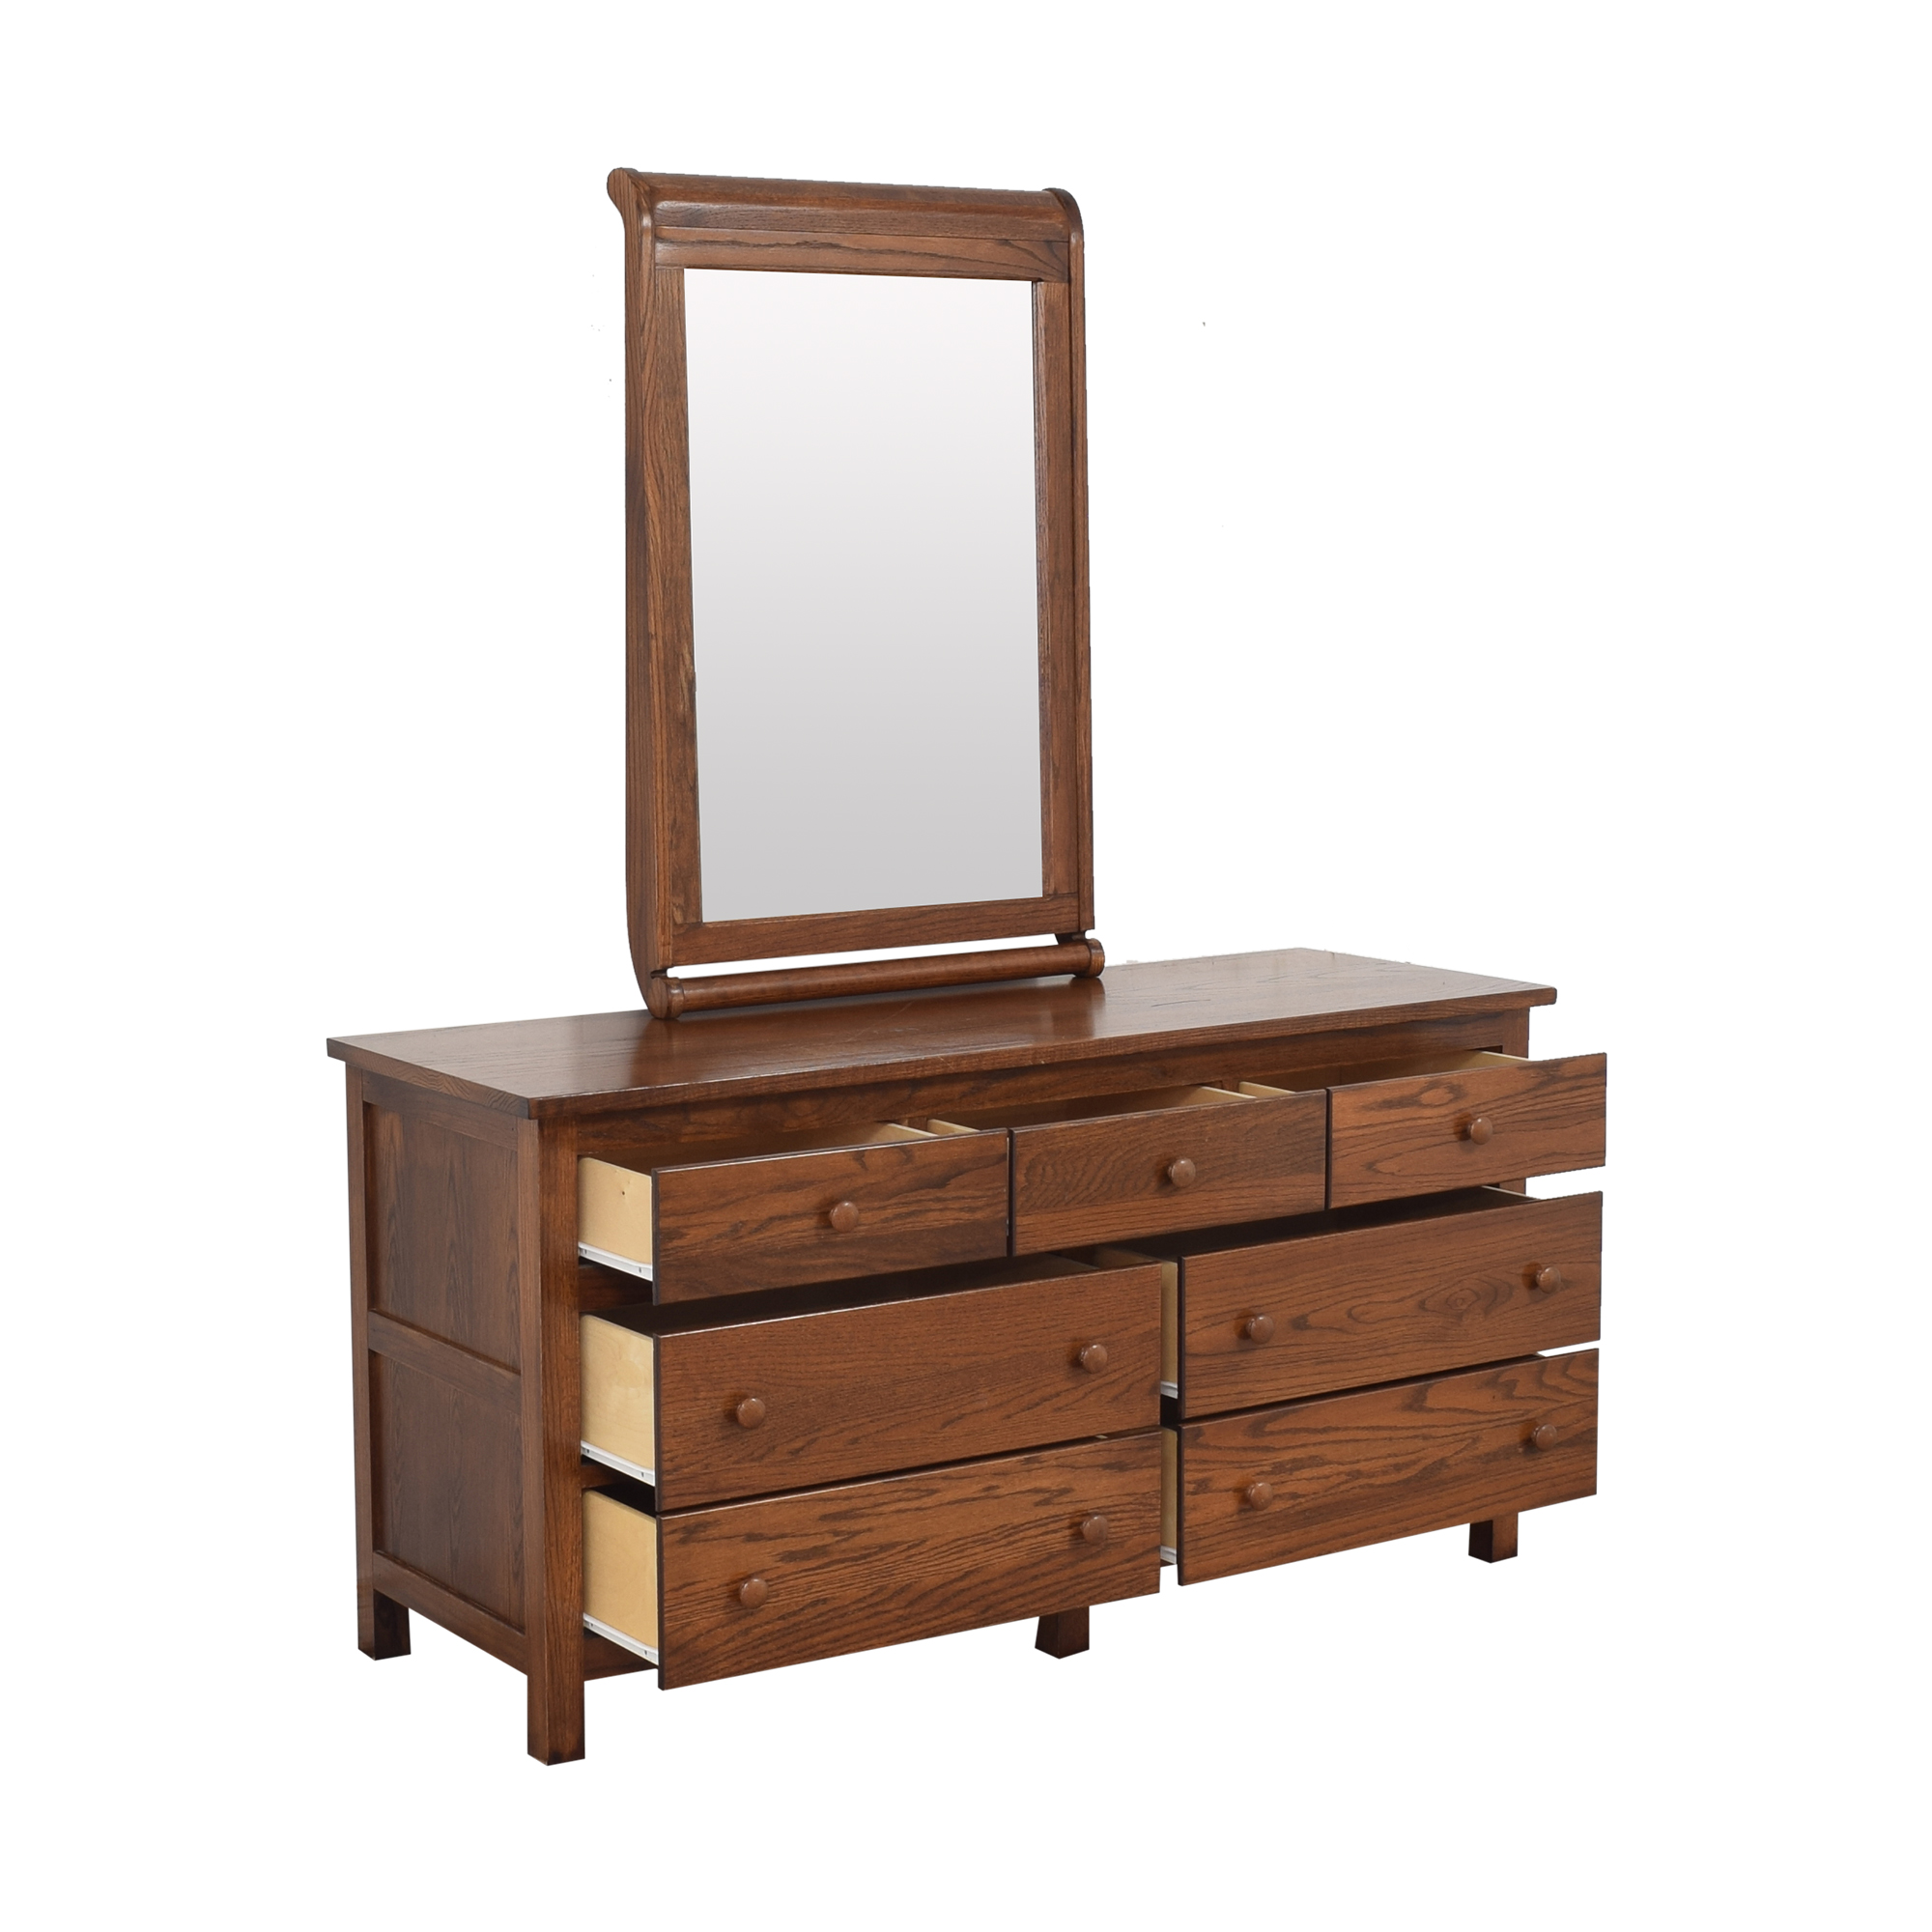 Baby's Dream Baby's Dream Dresser with Mirror used